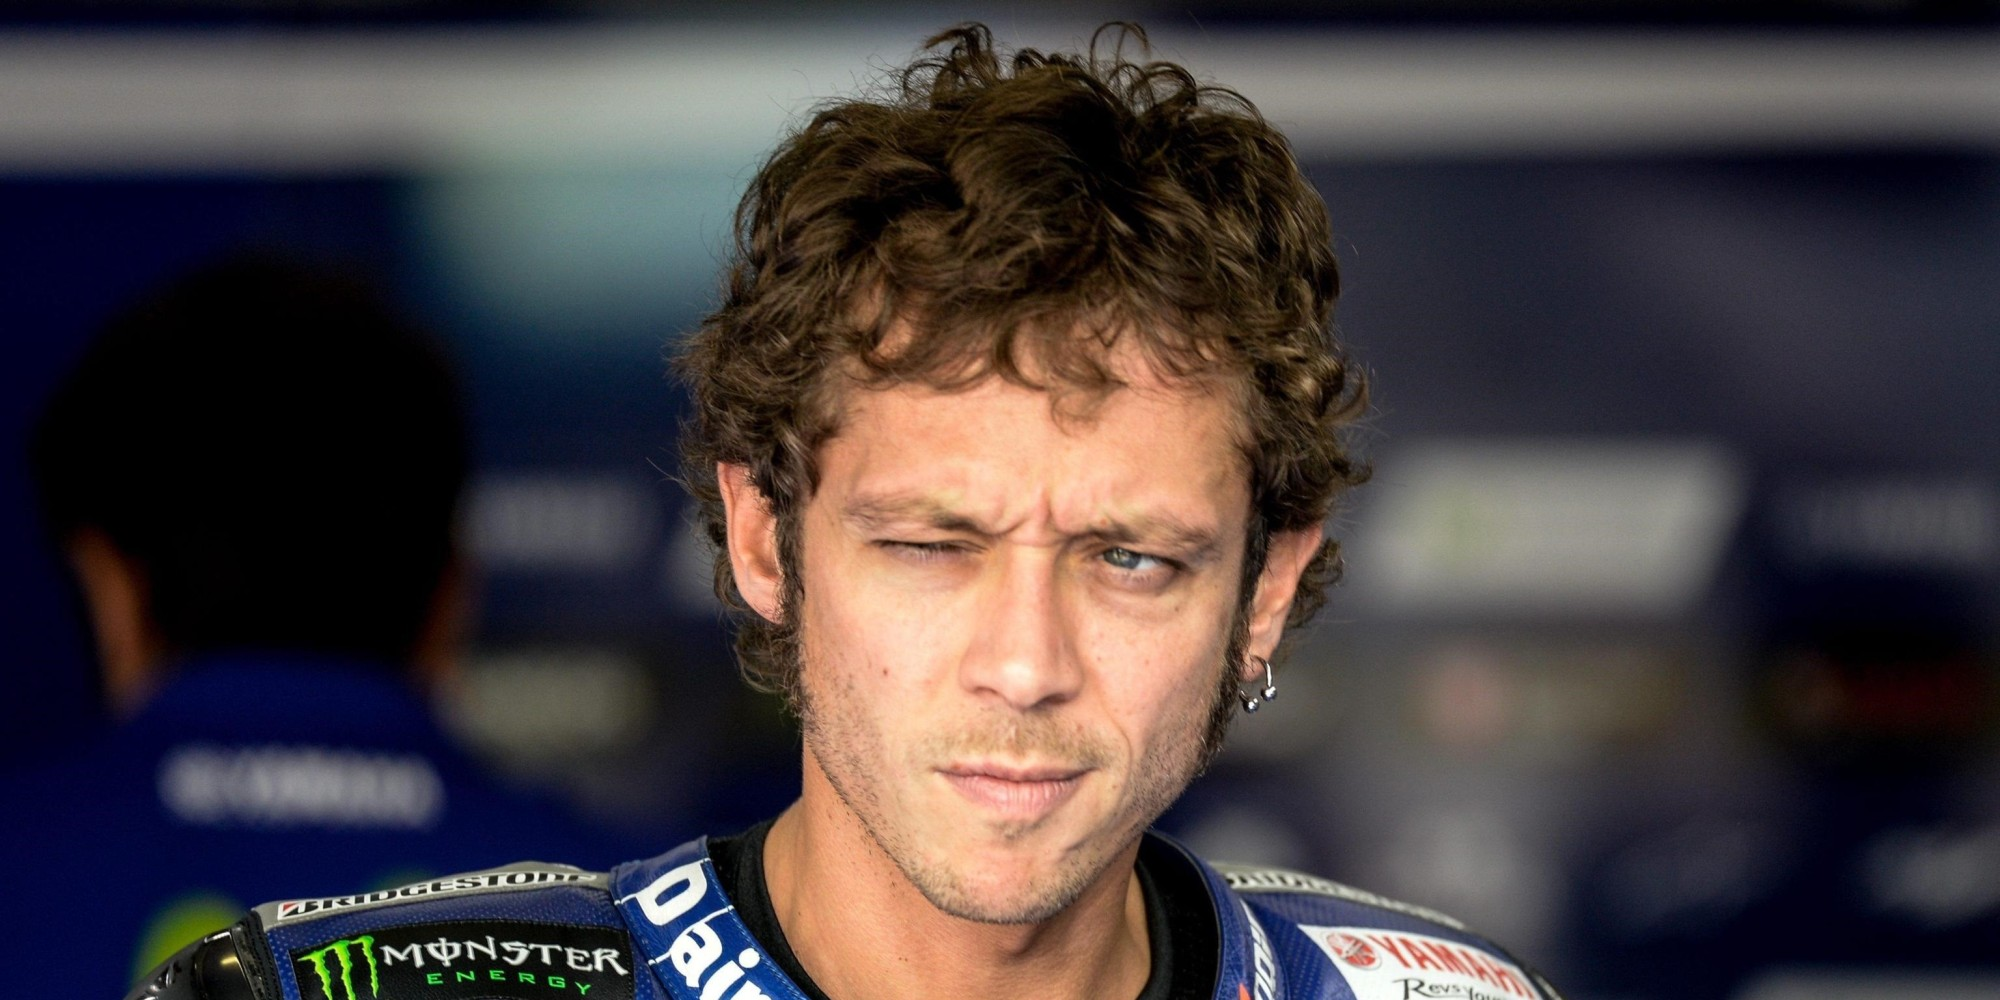 epaselect epa04883339 Yamaha MotoGP driver Valentino Rossi of Italy is seen in his team's box during the second free practice session of the Motorcycling Grand Prix of the Czech Republic at Masaryk circuit in Brno, Czech Republic, 14 August 2015. The Czech MotoGP race will take place on 16 August 2015.  EPA/FILIP SINGER